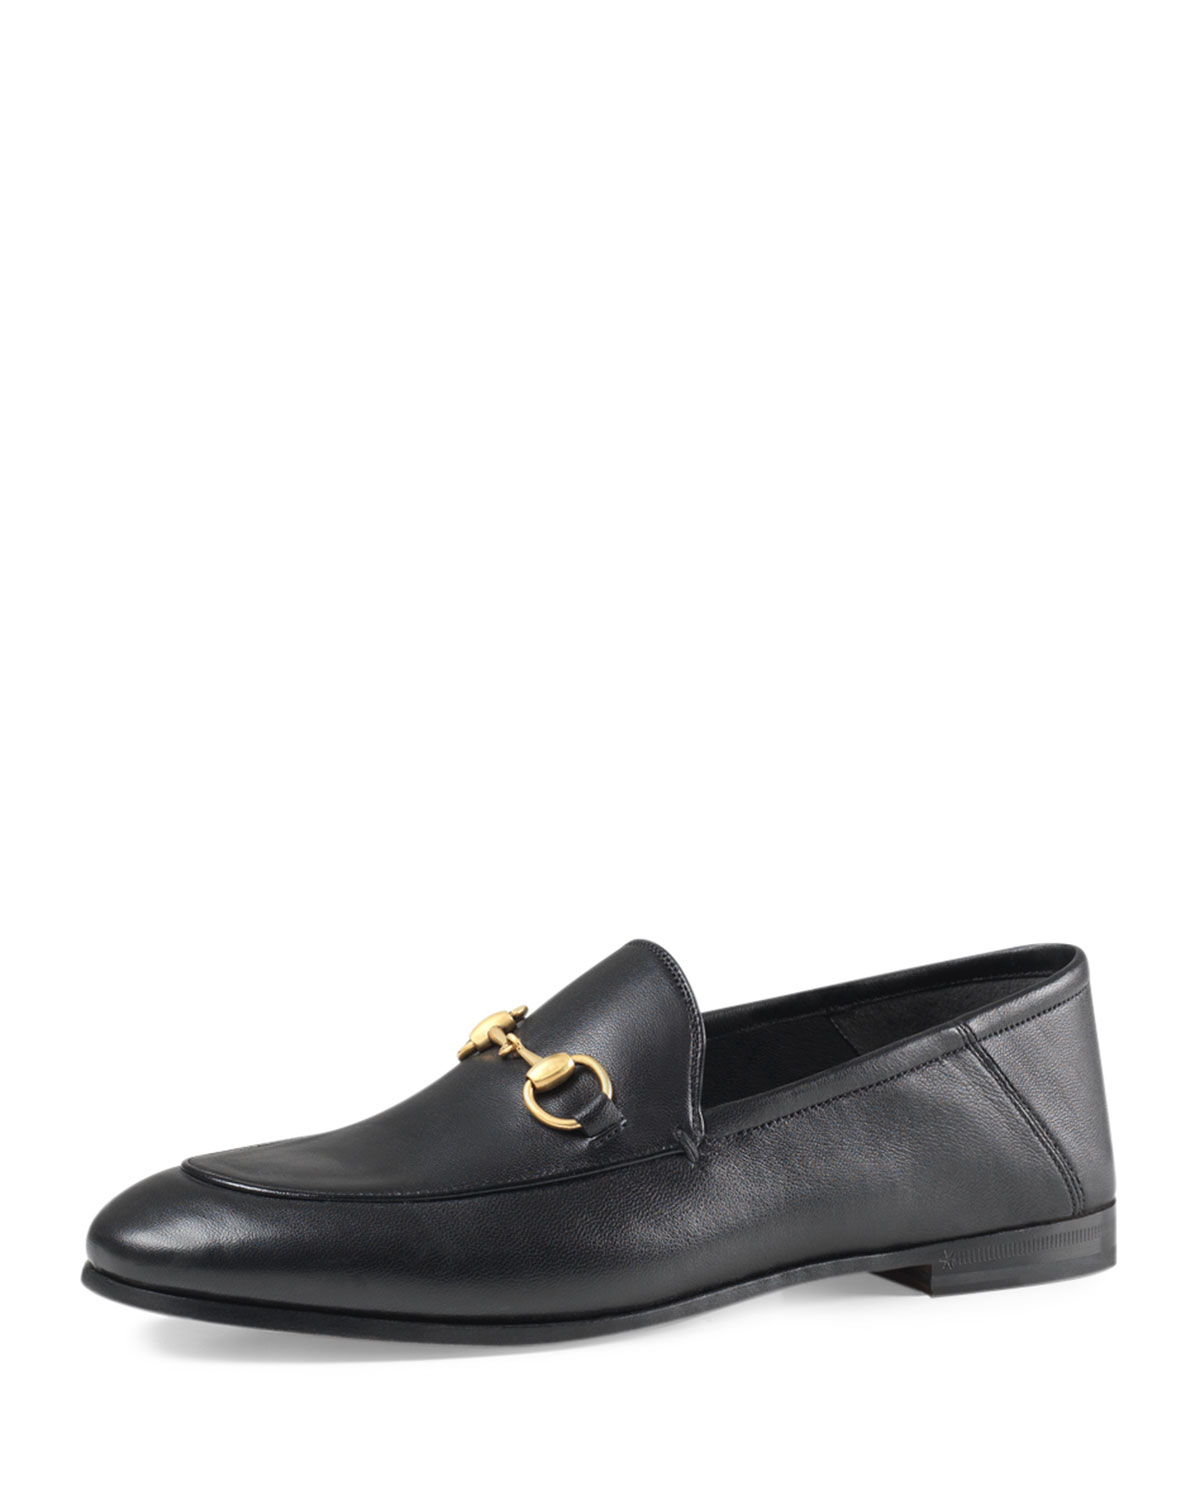 776985561e11 Gucci Brixton Leather Horsebit Loafer